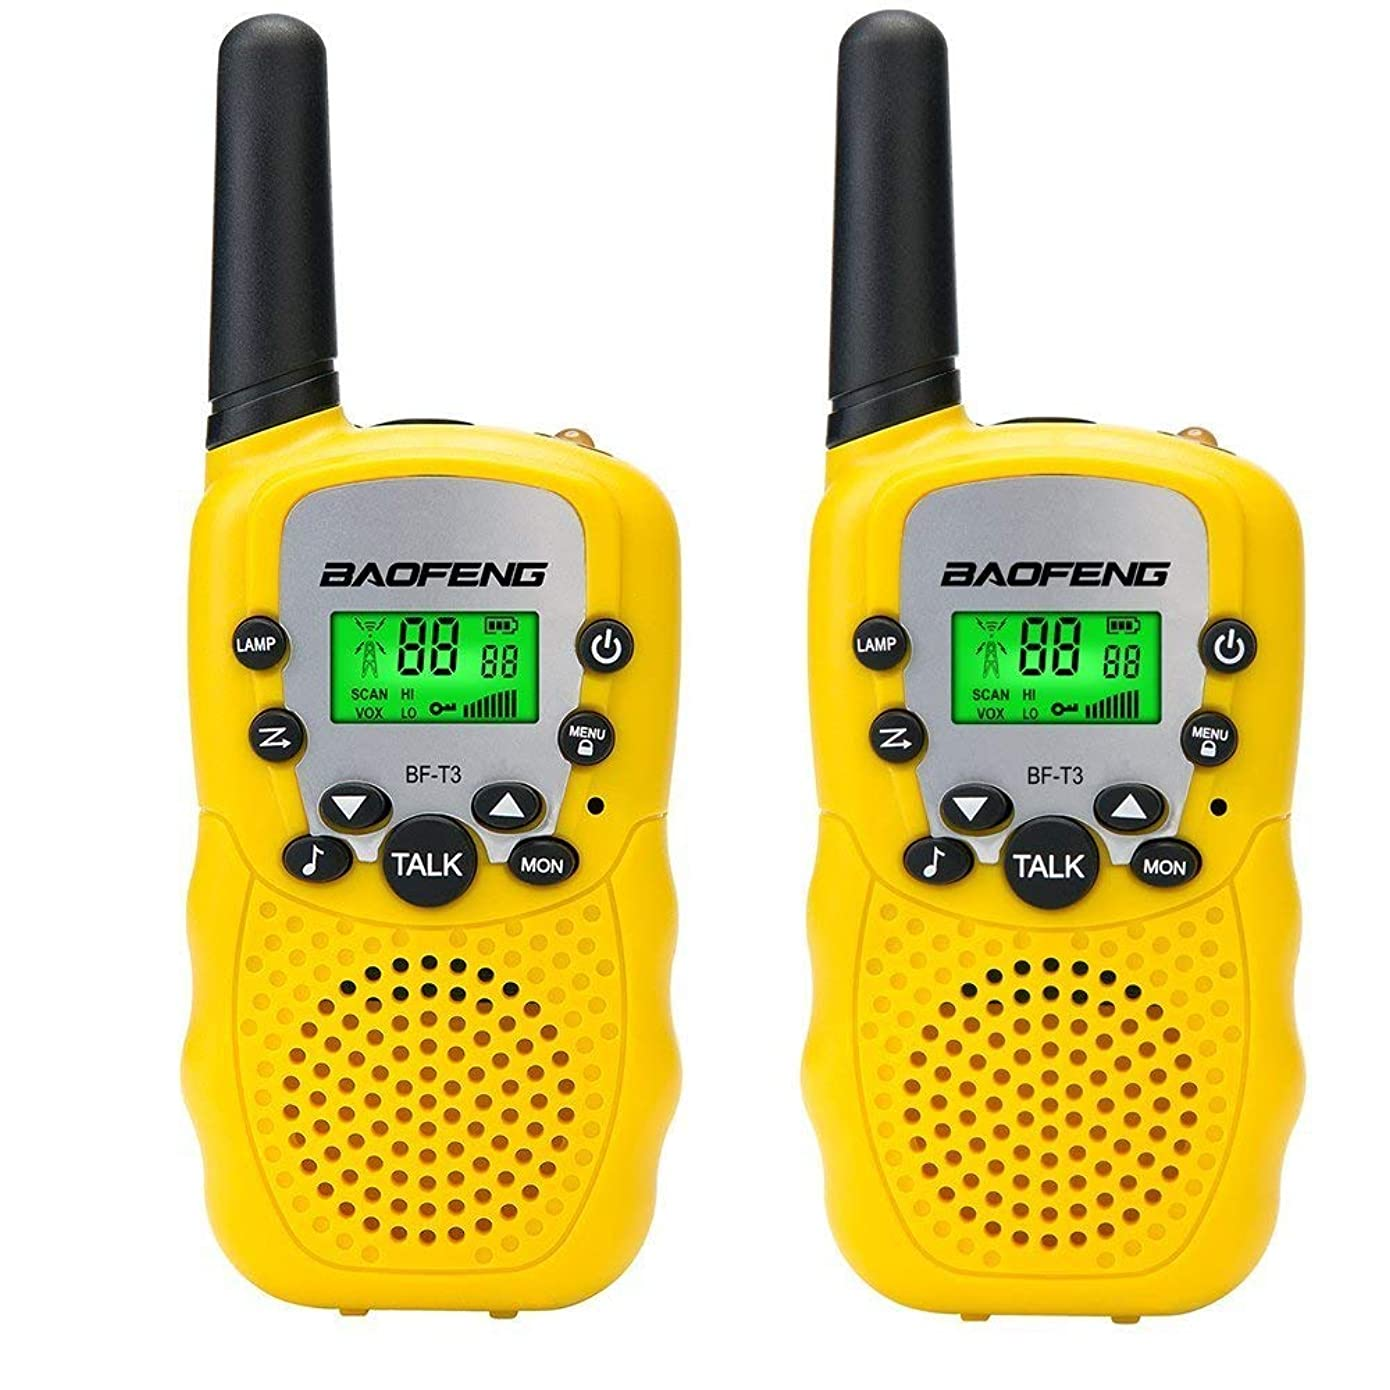 Walkies Talkies for Kids,Mini Two Way Radios for Boys Girls Children Gift,UHF 462-467MHz Frquency 22 Channels(2pcs Yellow)